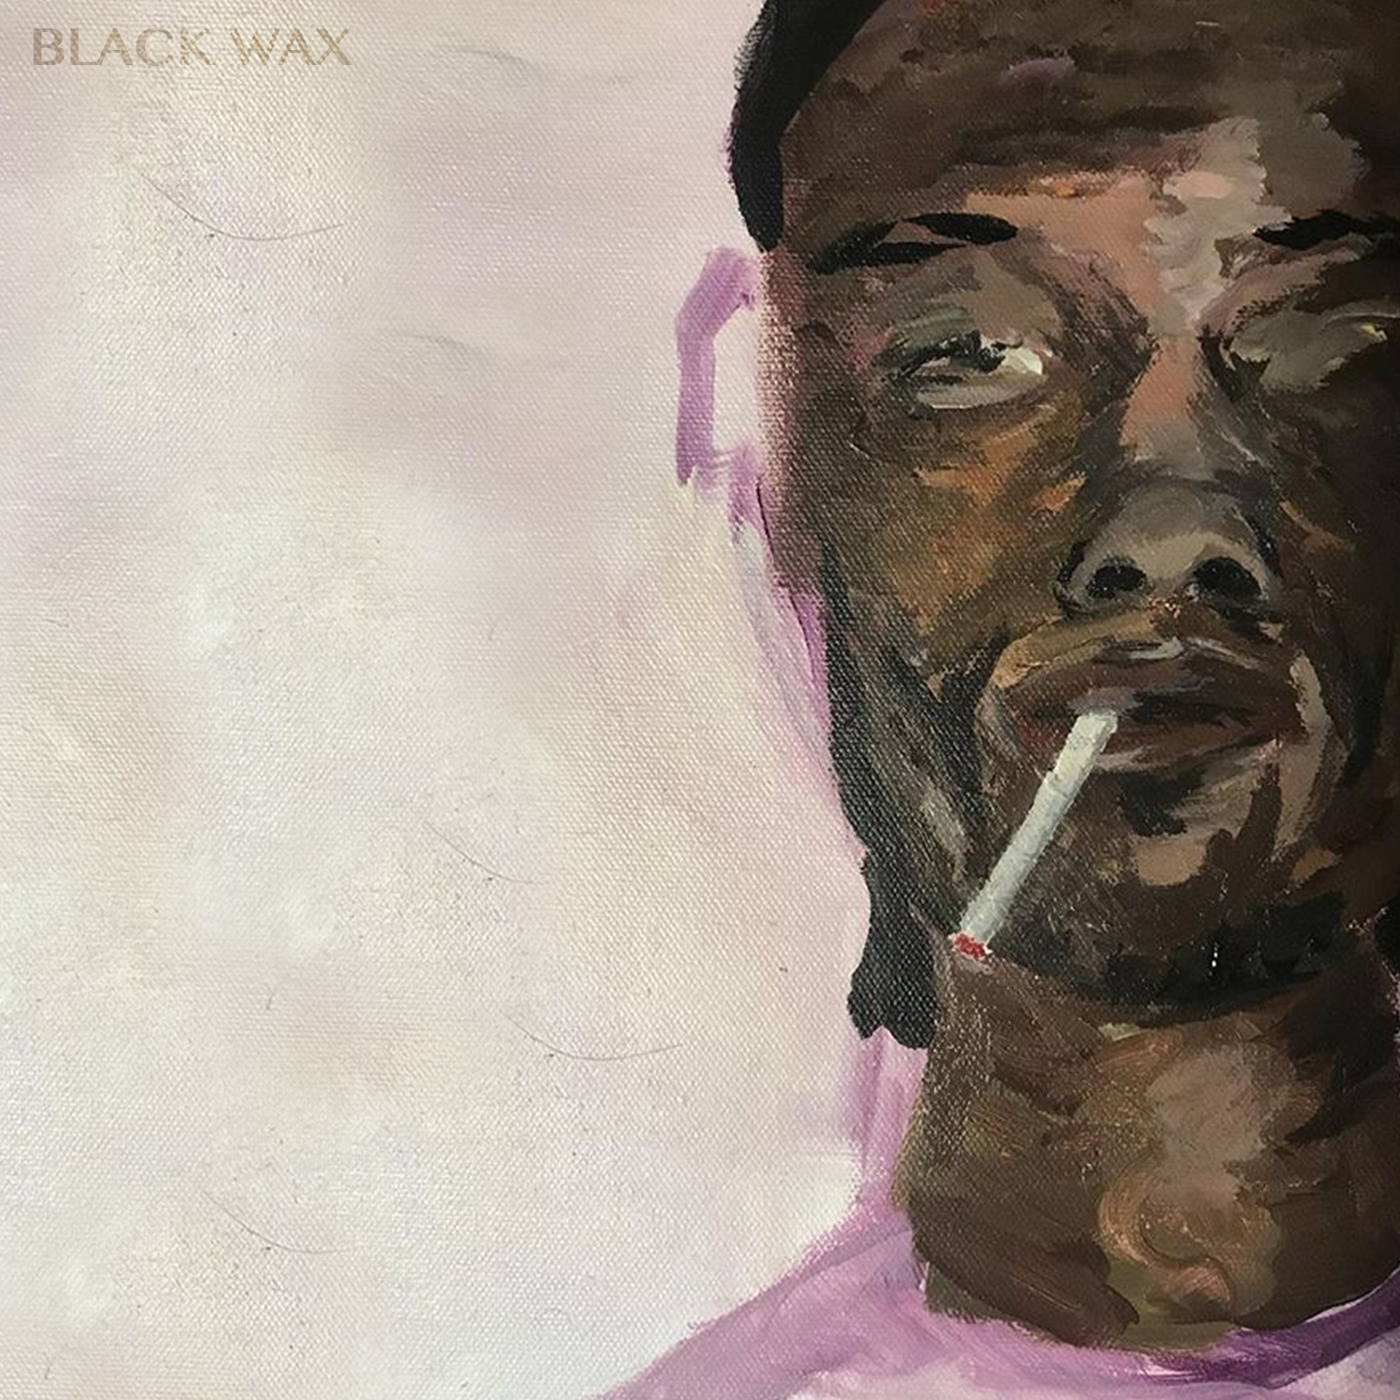 Huey Briss & Nikobeats - Black Wax (2018) - Executive Produced by Nikobeats